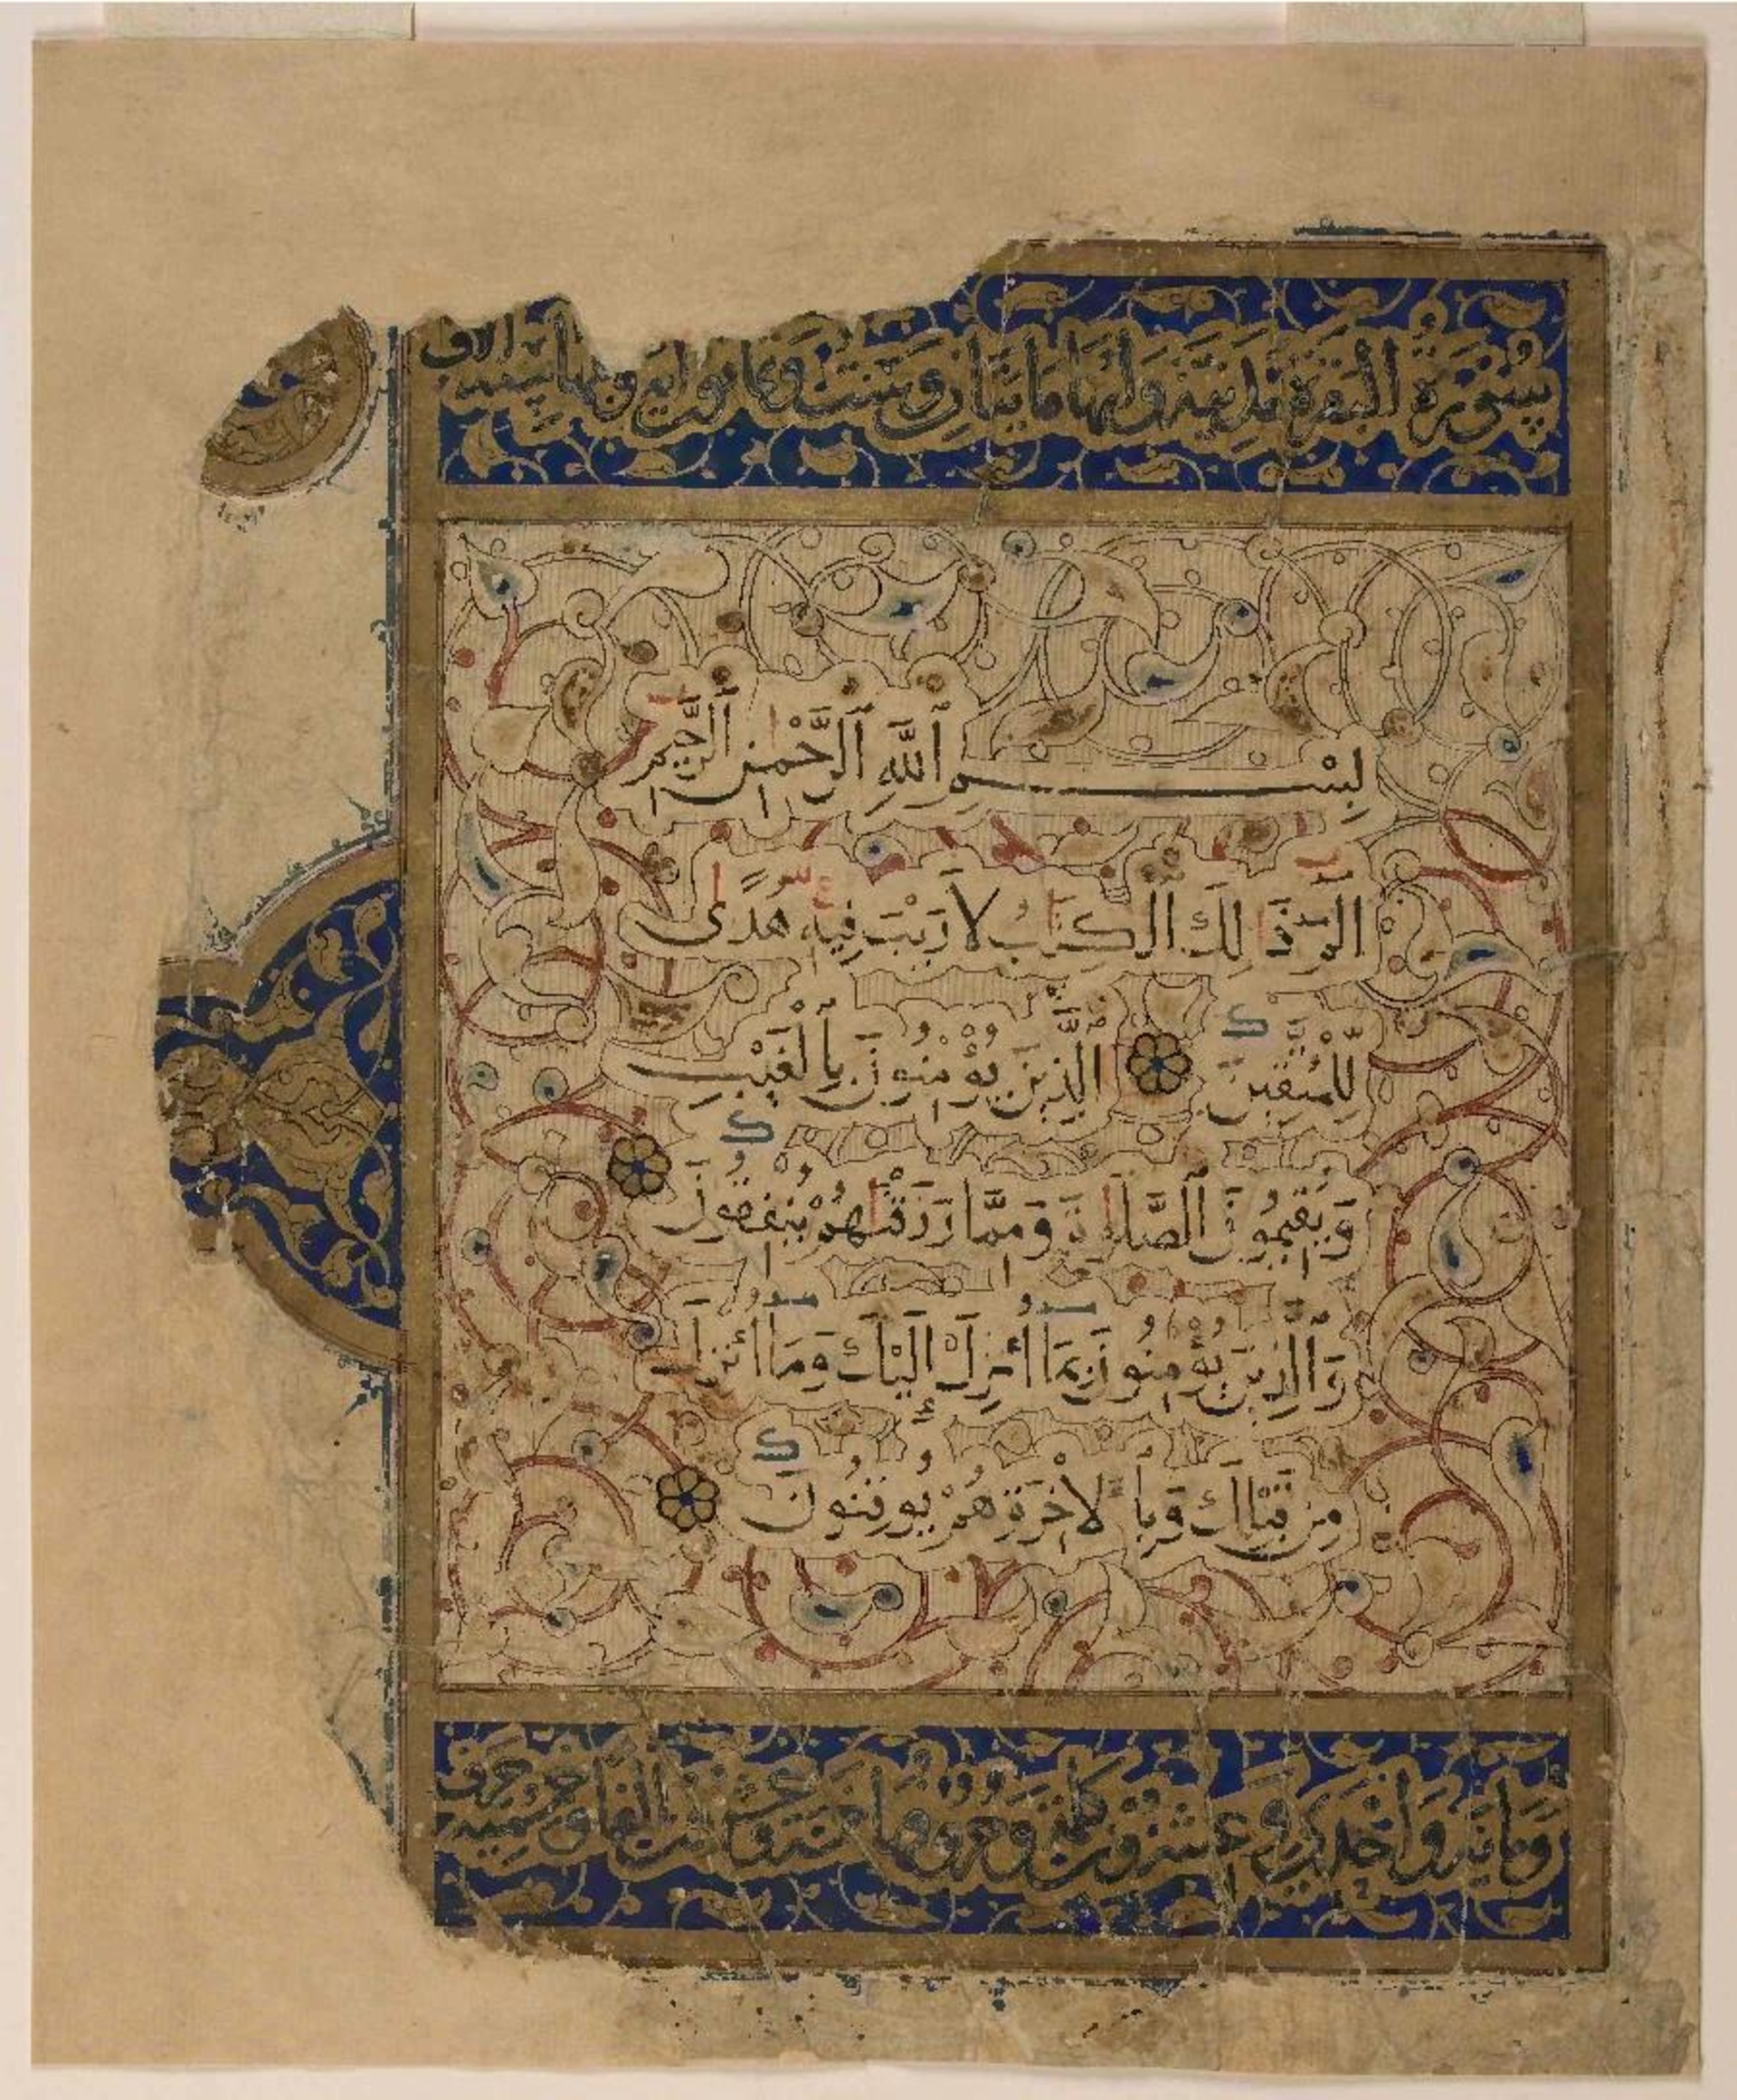 Zaboor holy book in urdu